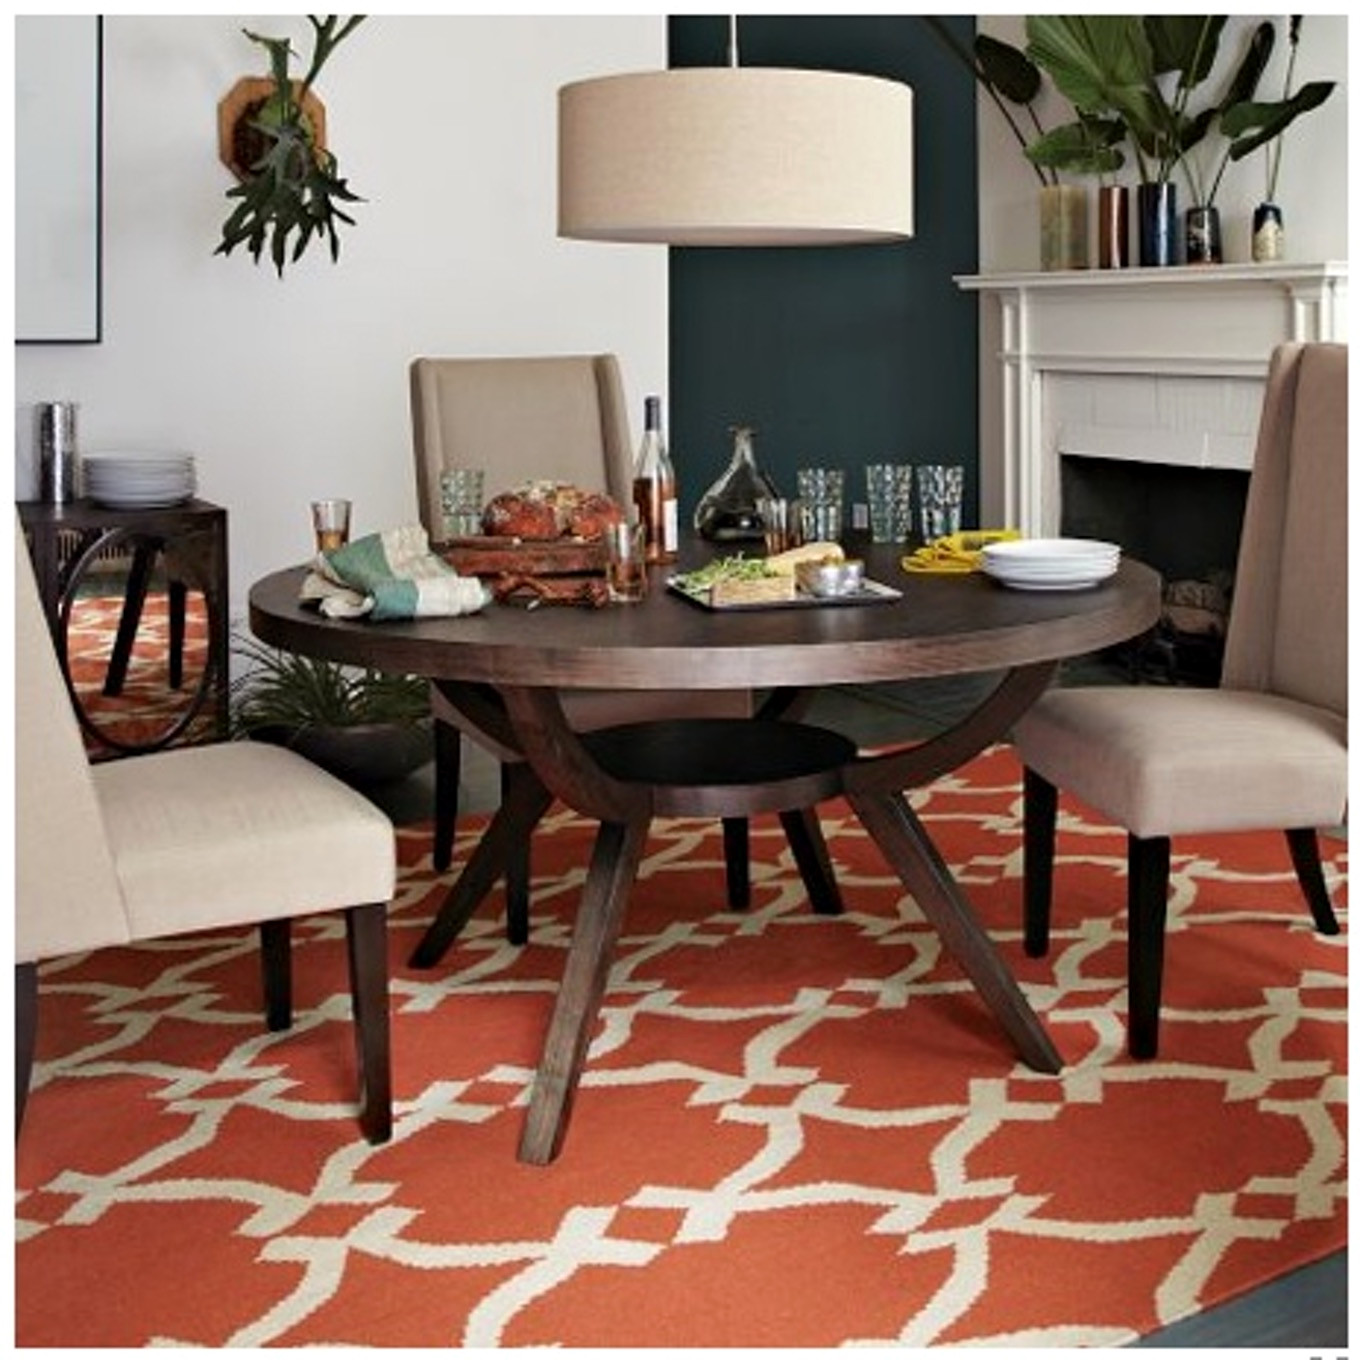 Amazing Rugs Under Kitchen Table Best Rug For Dining Jt Interiors